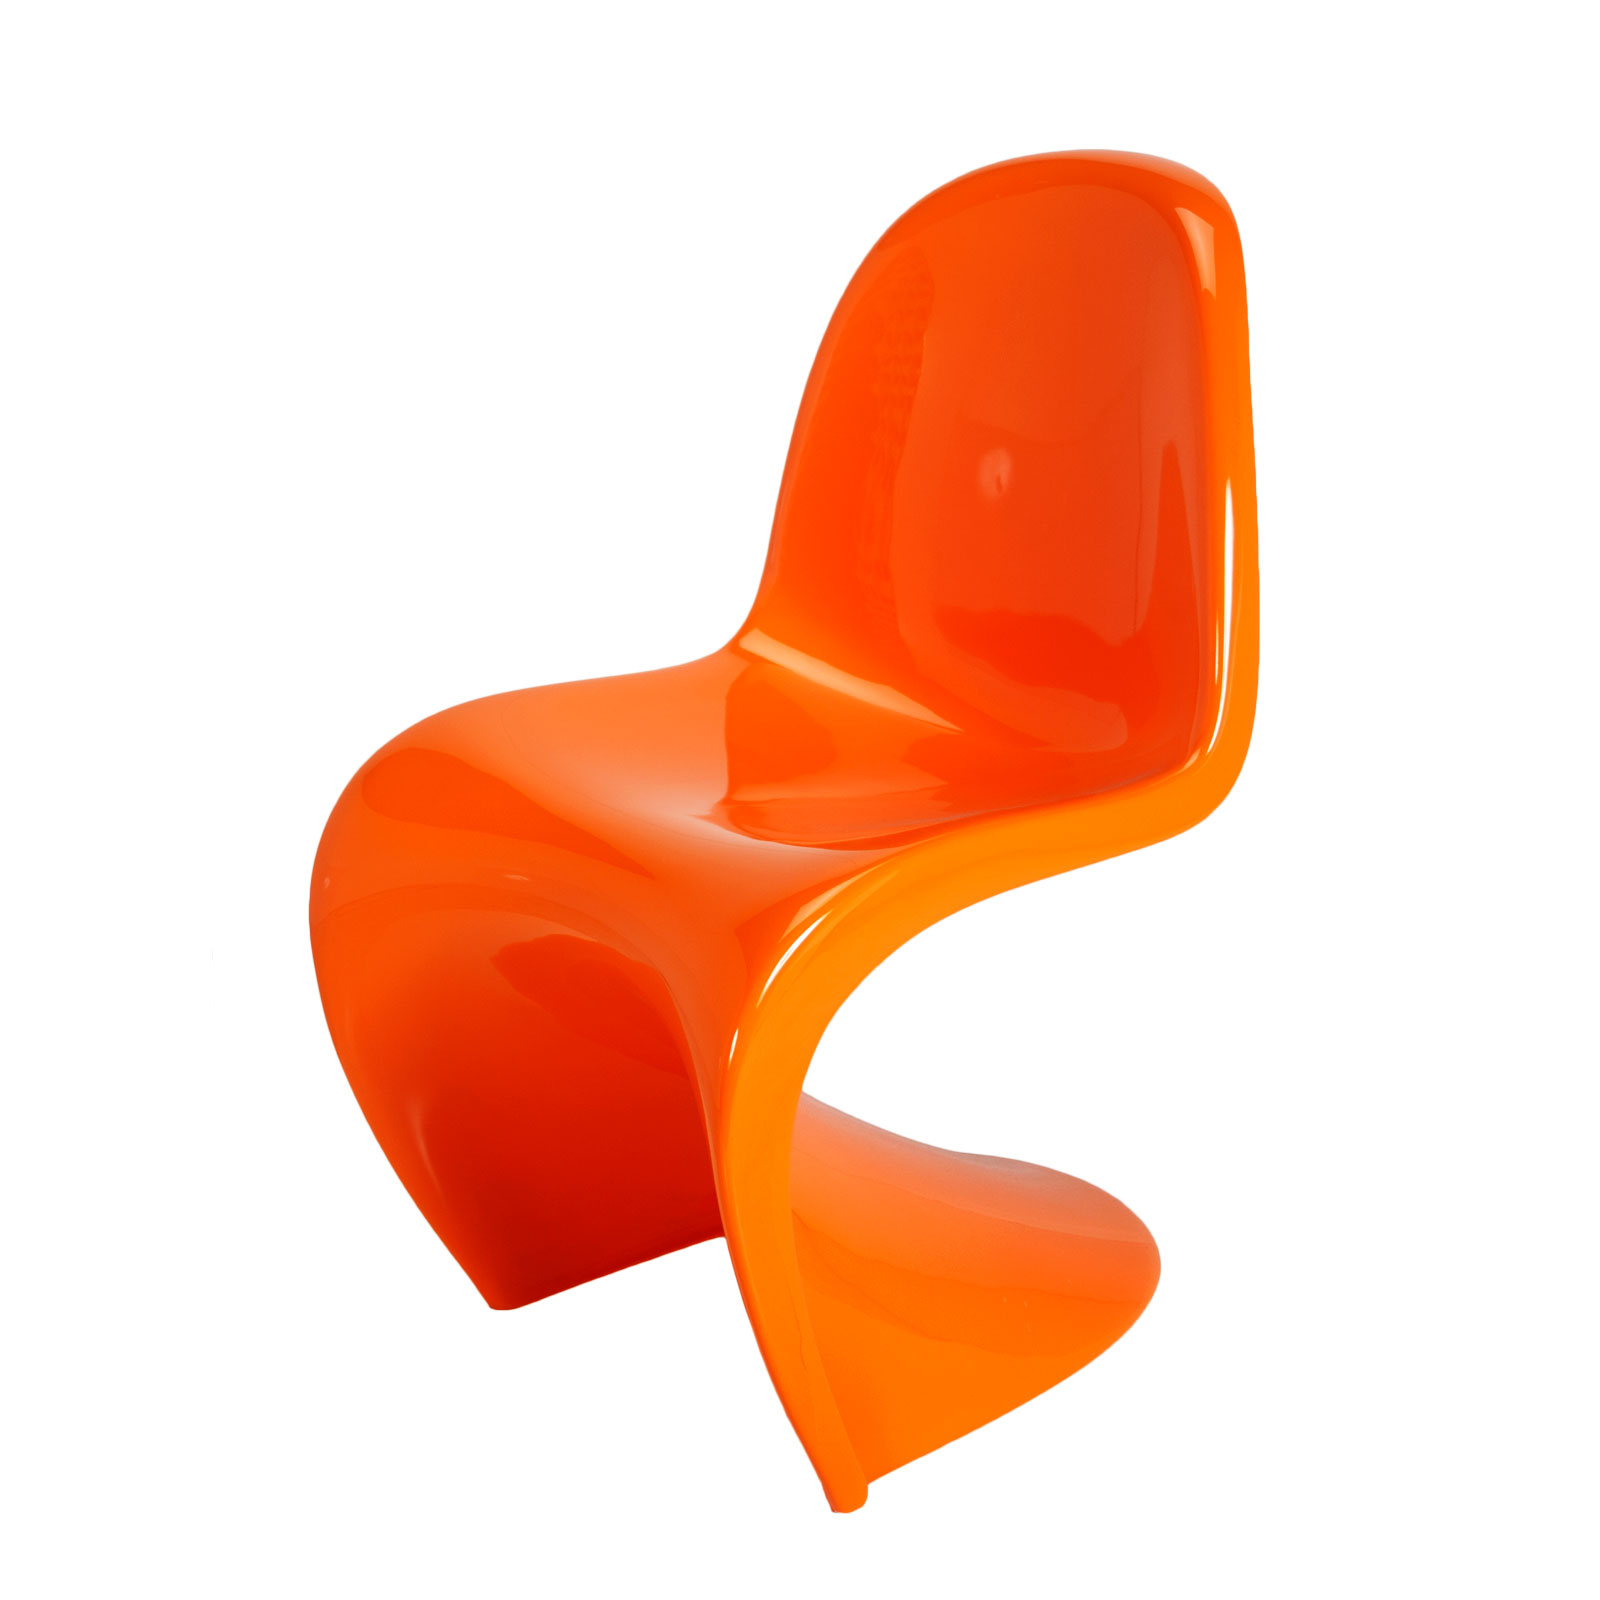 Panton Chairs Panton Chair Orange Formdecor